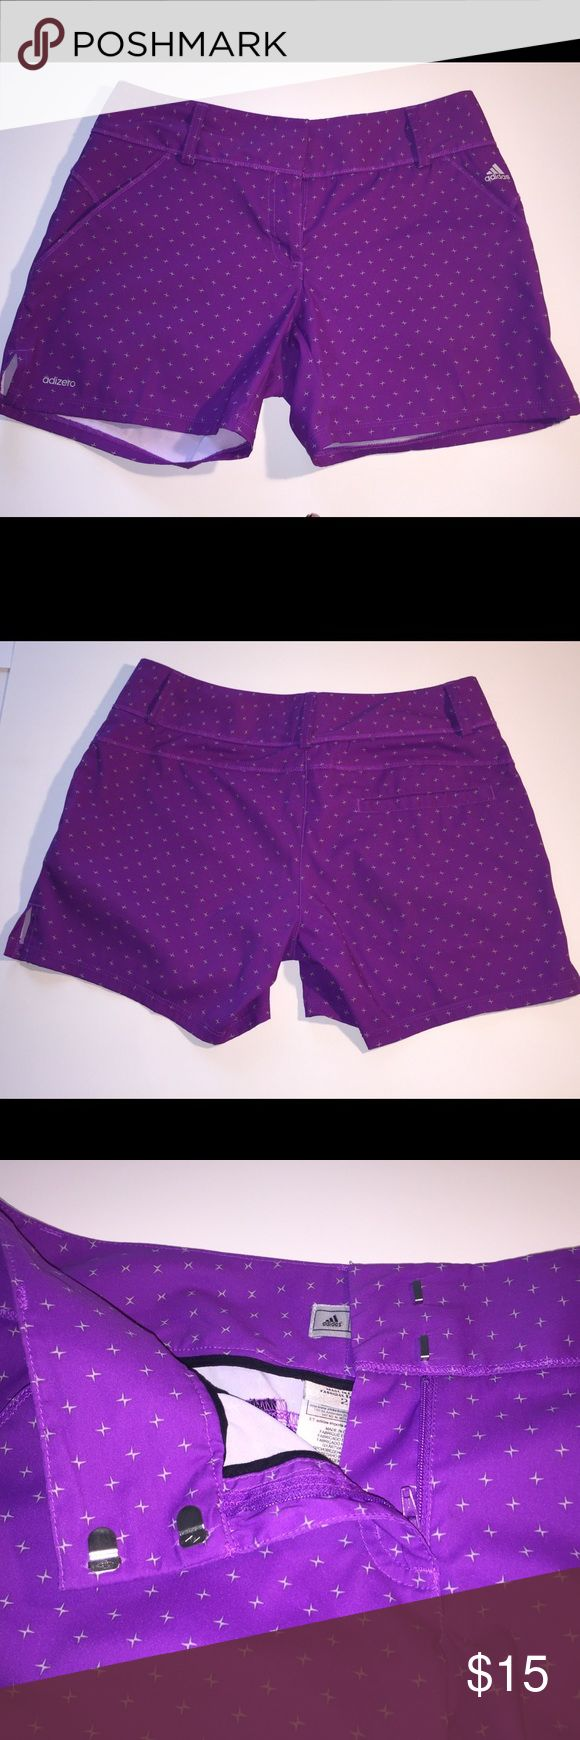 """Adidas Adizero Women's Purple/silver shorts Size 2 Adidas Adizero Women's Purple/silver shorts Size 2. Like new condition. Zipper front closure with clasps. 2 front pockets, 1 back pocket. 94% polyester, 6% Spandex. Smoke free/ pet free home.  Great for: fitness, gym, workout, athletic, performance, exercise, running, tennis, golf, yoga, cycling, cross fit Measurements:  Waist lying flat: 16"""" Rise approx: 8"""" Inseam: 5"""" IC 9 Adidas Shorts"""